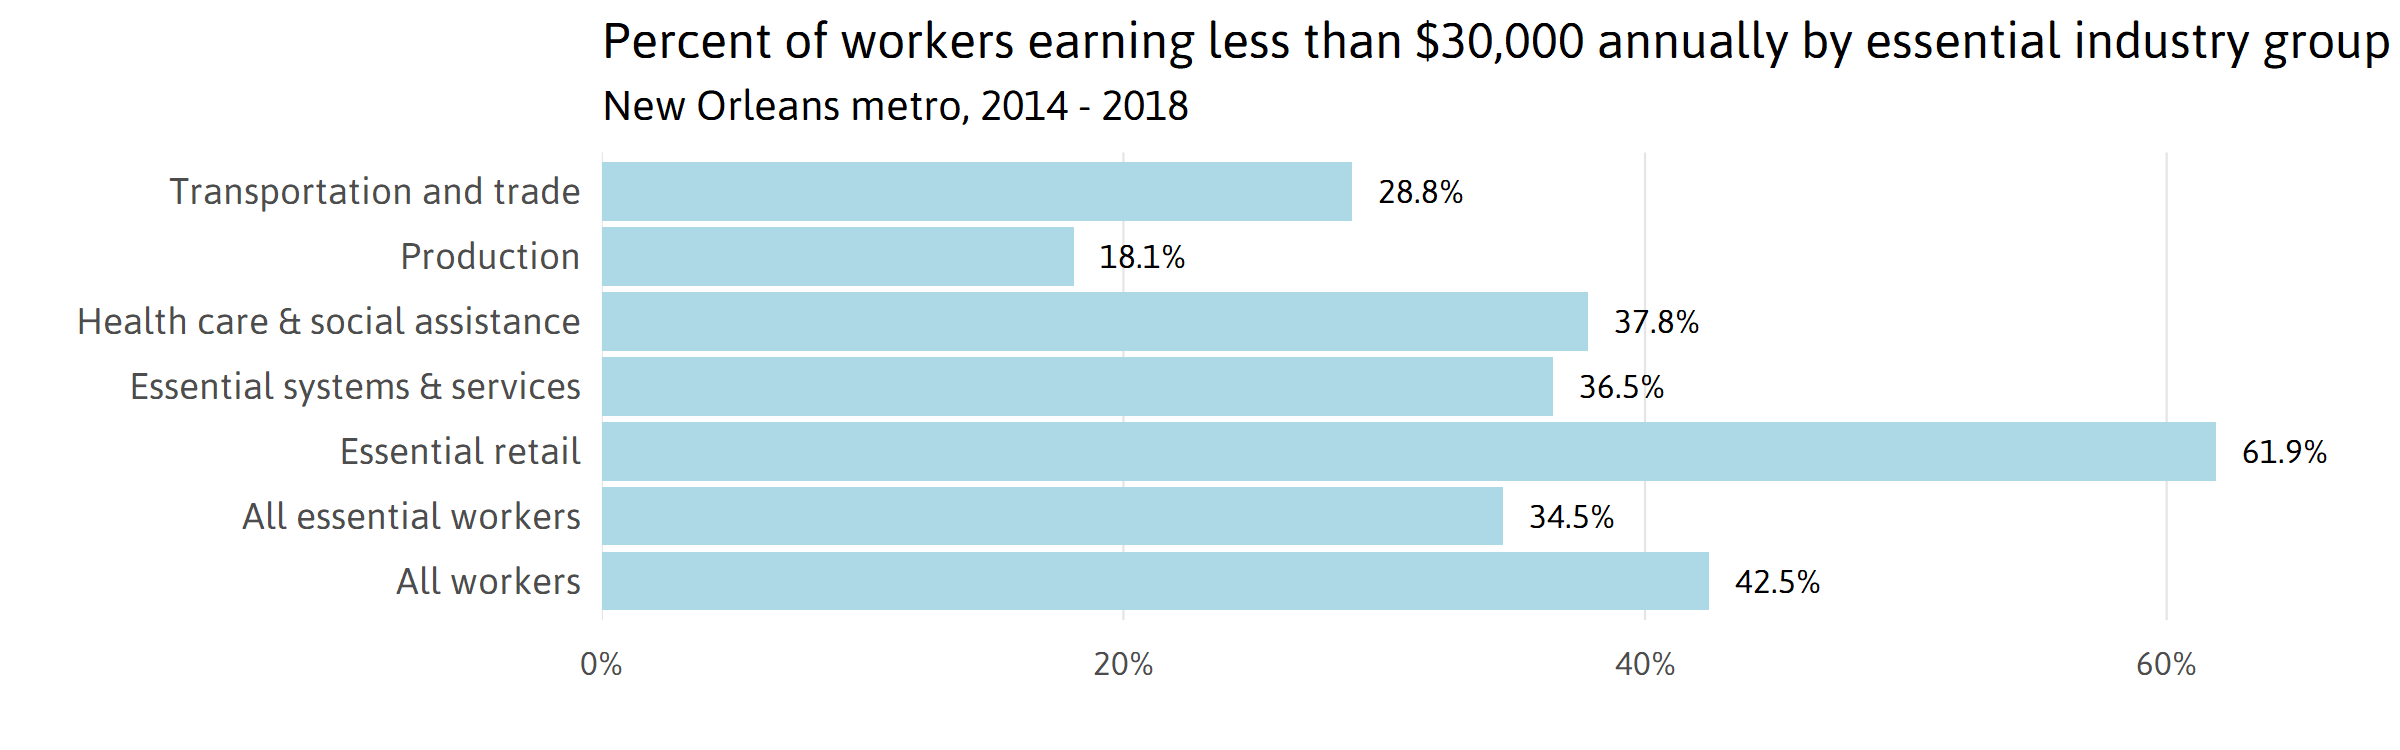 Essential workers earning less than $30,000